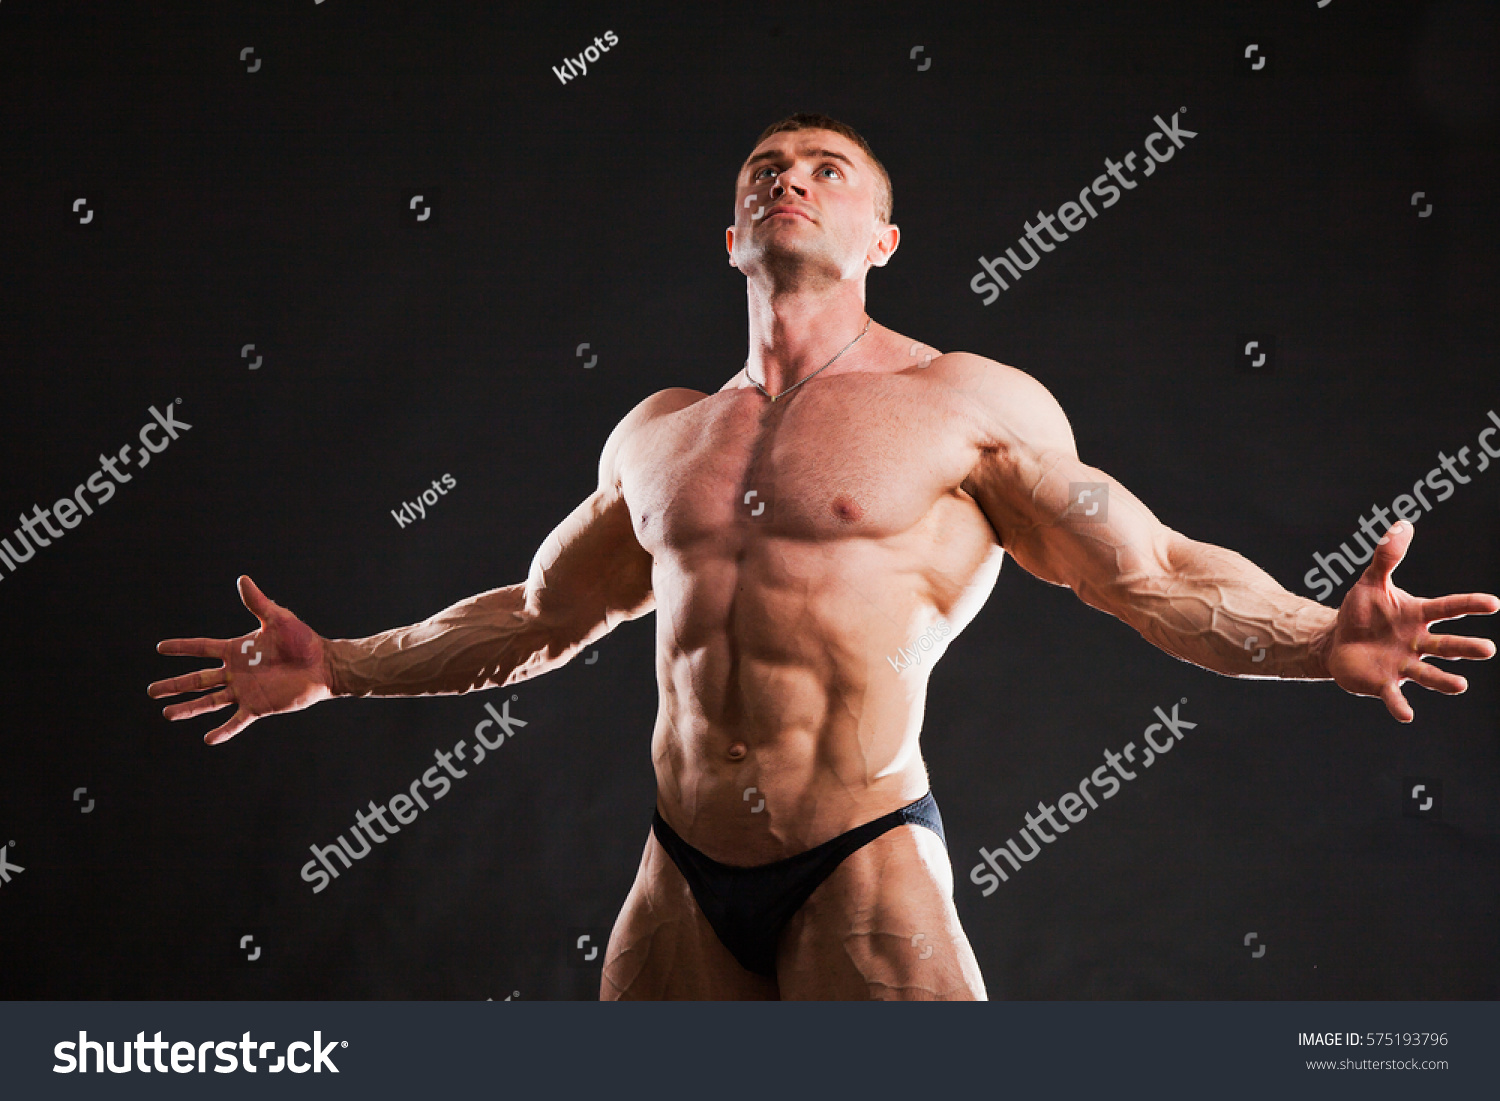 How to dry muscle